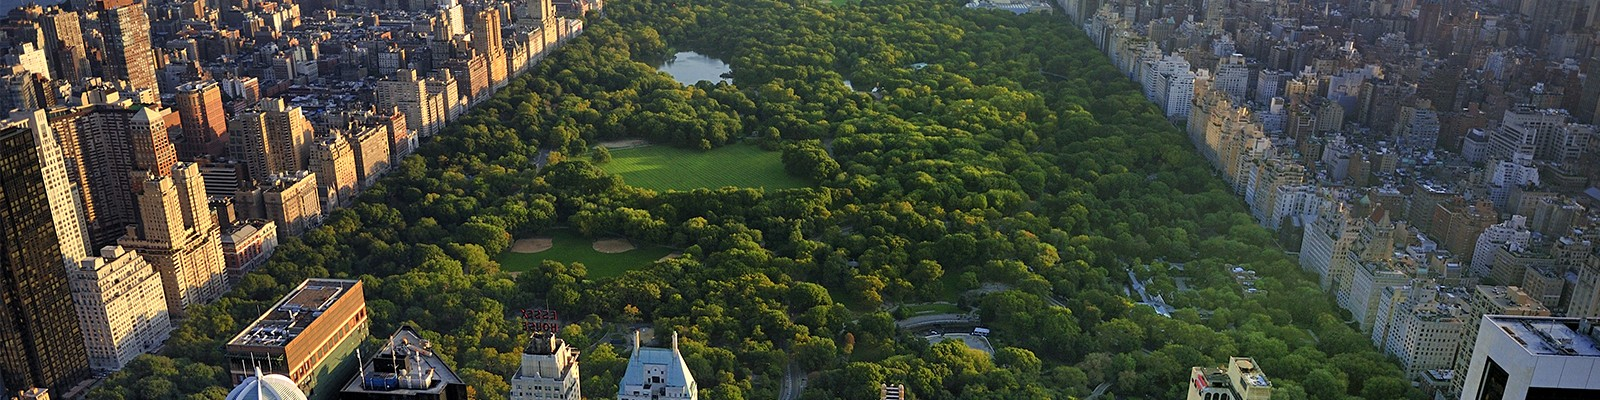 Luxury New York Holidays - Central Park - Header